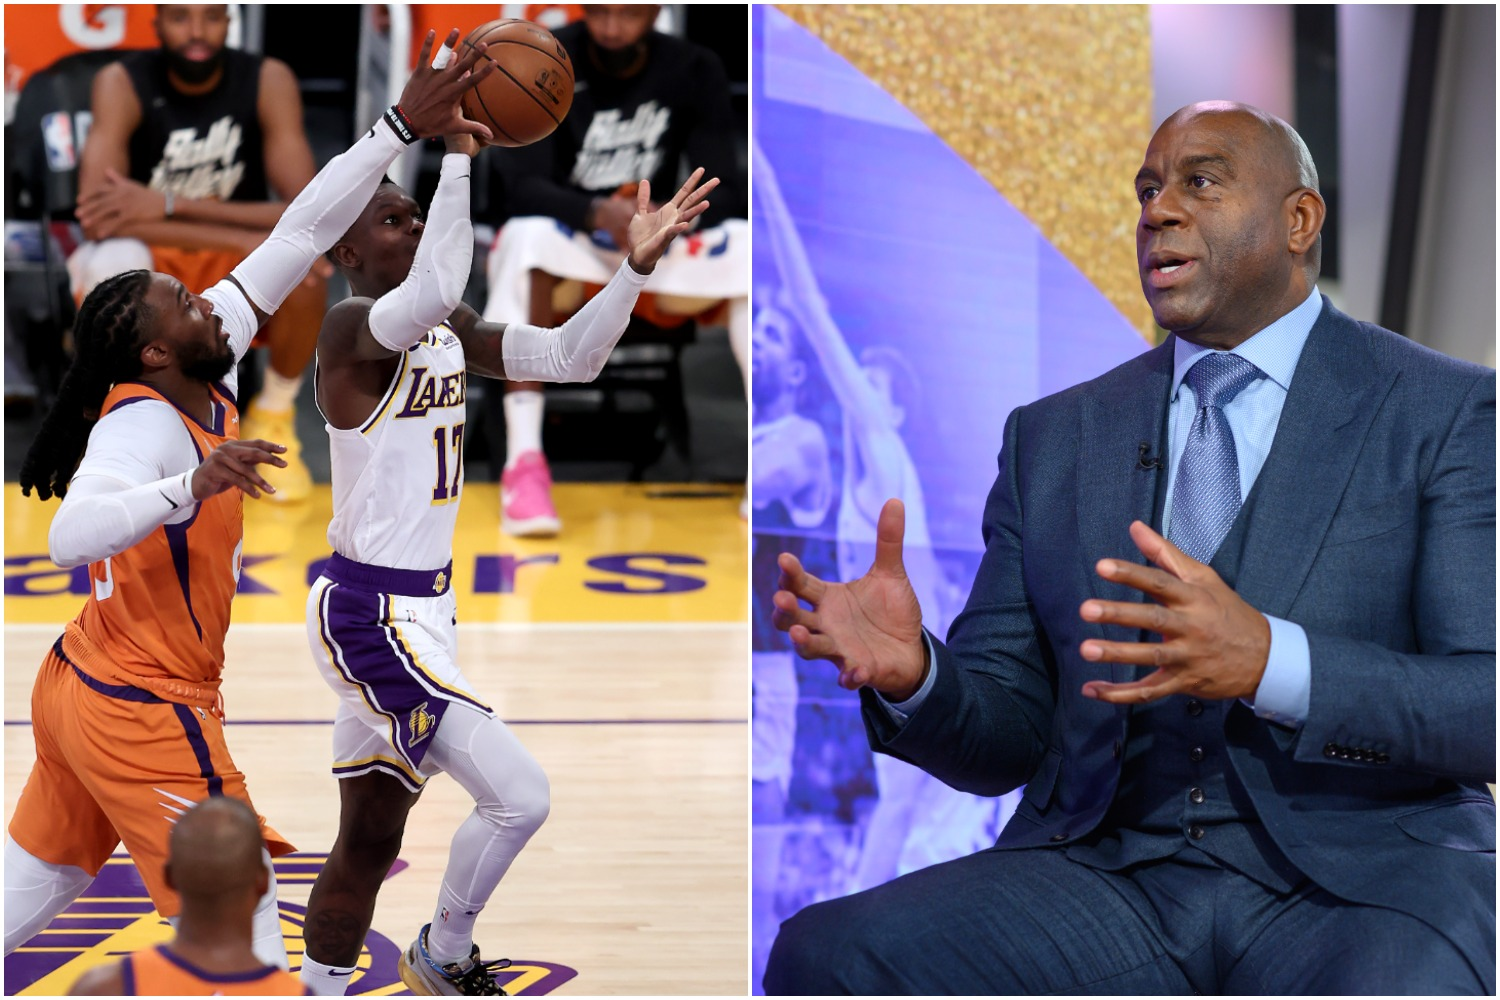 Magic Johnson Blasts Lakers' Dennis Schroder in Brutally Honest Radio Segment: 'He Failed in This Series'